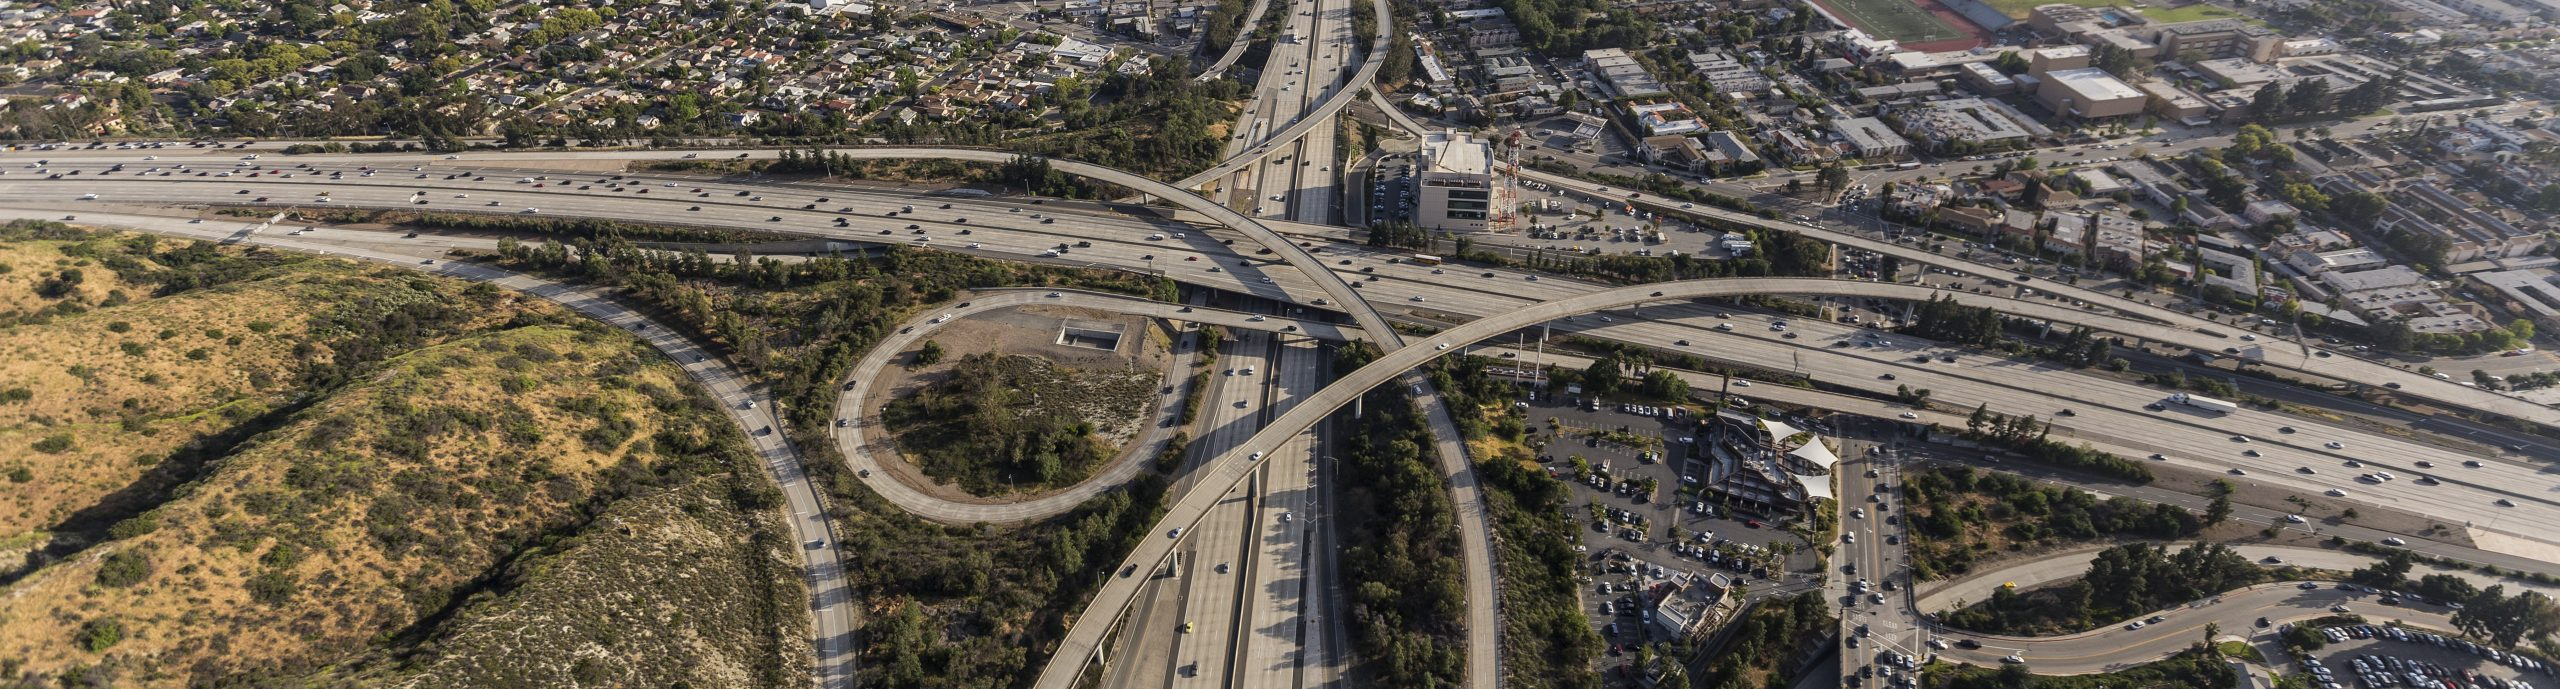 Glendale Freeway Interchange